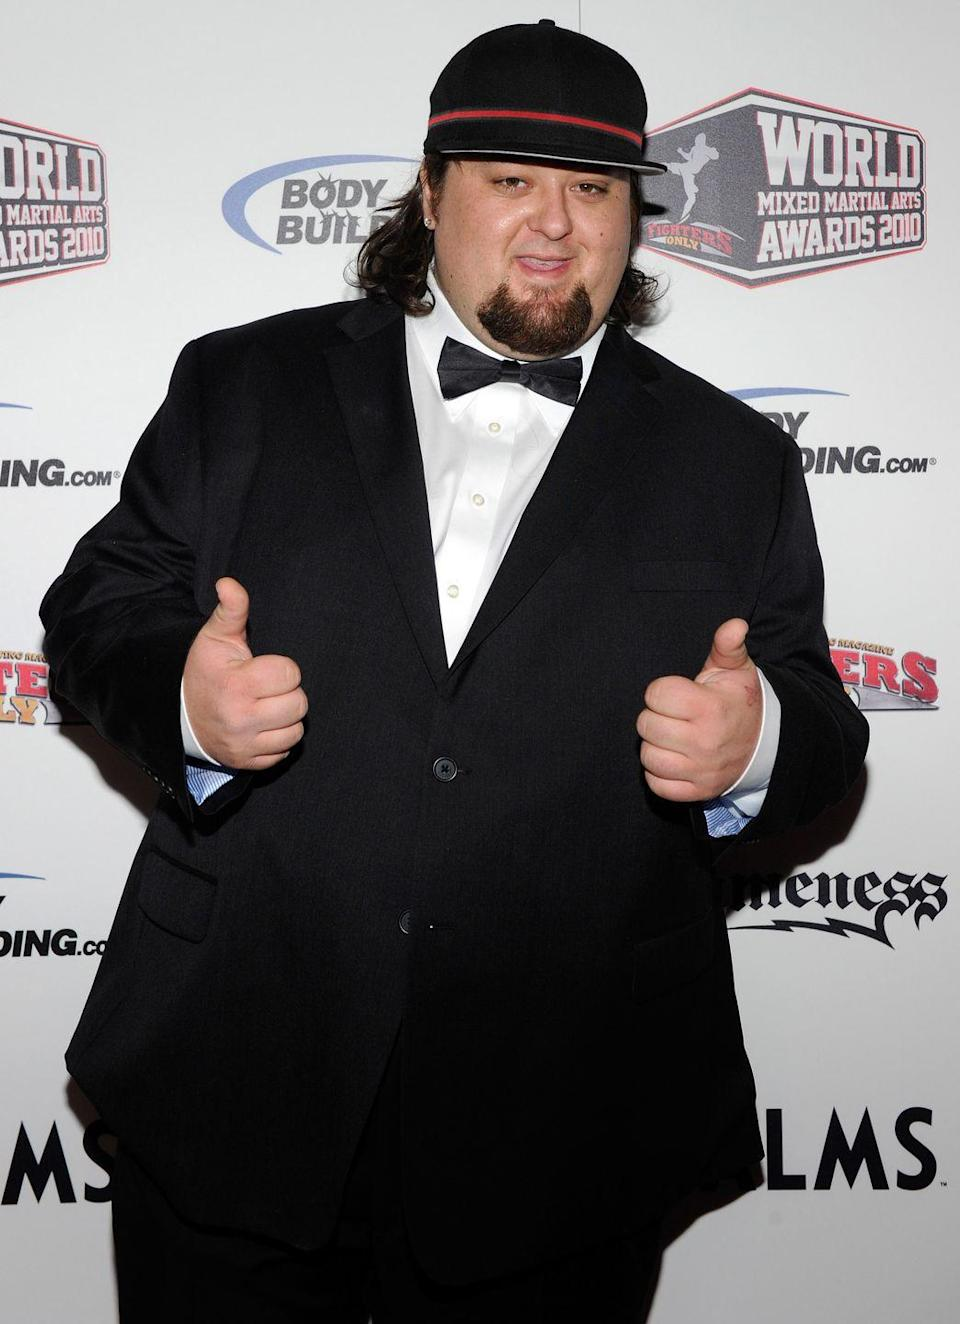 """<p>After seeing friend and costar, Corey """"Big Hoss"""" Harrison, drop <a href=""""https://people.com/tv/pawn-stars-corey-harrison-192-pound-weight-loss/"""" rel=""""nofollow noopener"""" target=""""_blank"""" data-ylk=""""slk:almost 200 pounds"""" class=""""link rapid-noclick-resp"""">almost 200 pounds</a> after getting lap band surgery, Chumlee of <em>Pawn Stars </em>decided to get gastric sleeve surgery. He lost almost 40 pounds during the pre-op diet alone.</p>"""